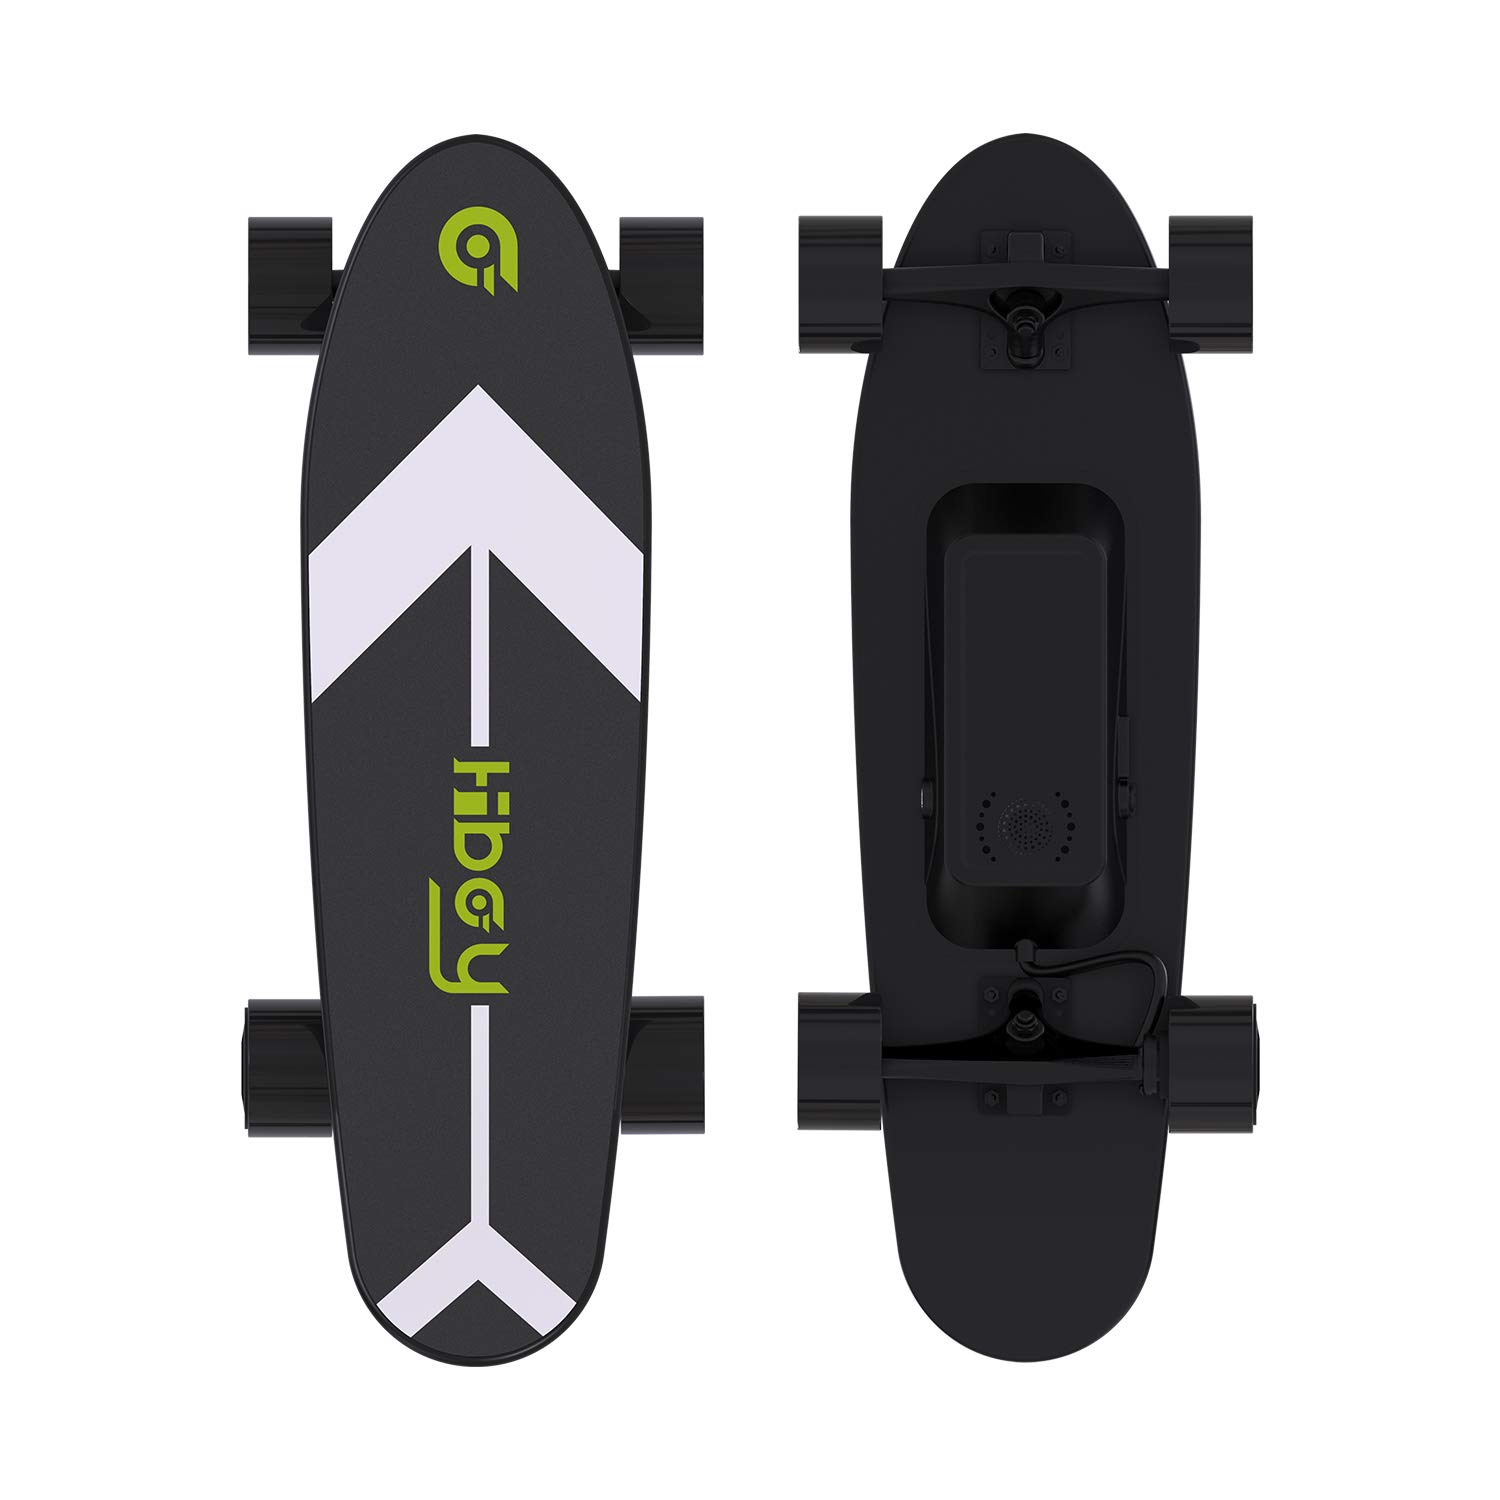 Hiboy S11 Electric Skateboard with Wireless Remote, Longboard Single Hub Motor, Light Weight 7.94LBS, Top Speed 12.4MPH, Range 6.2 Miles, for Teens and Students(Upgraded Version) by Hiboy